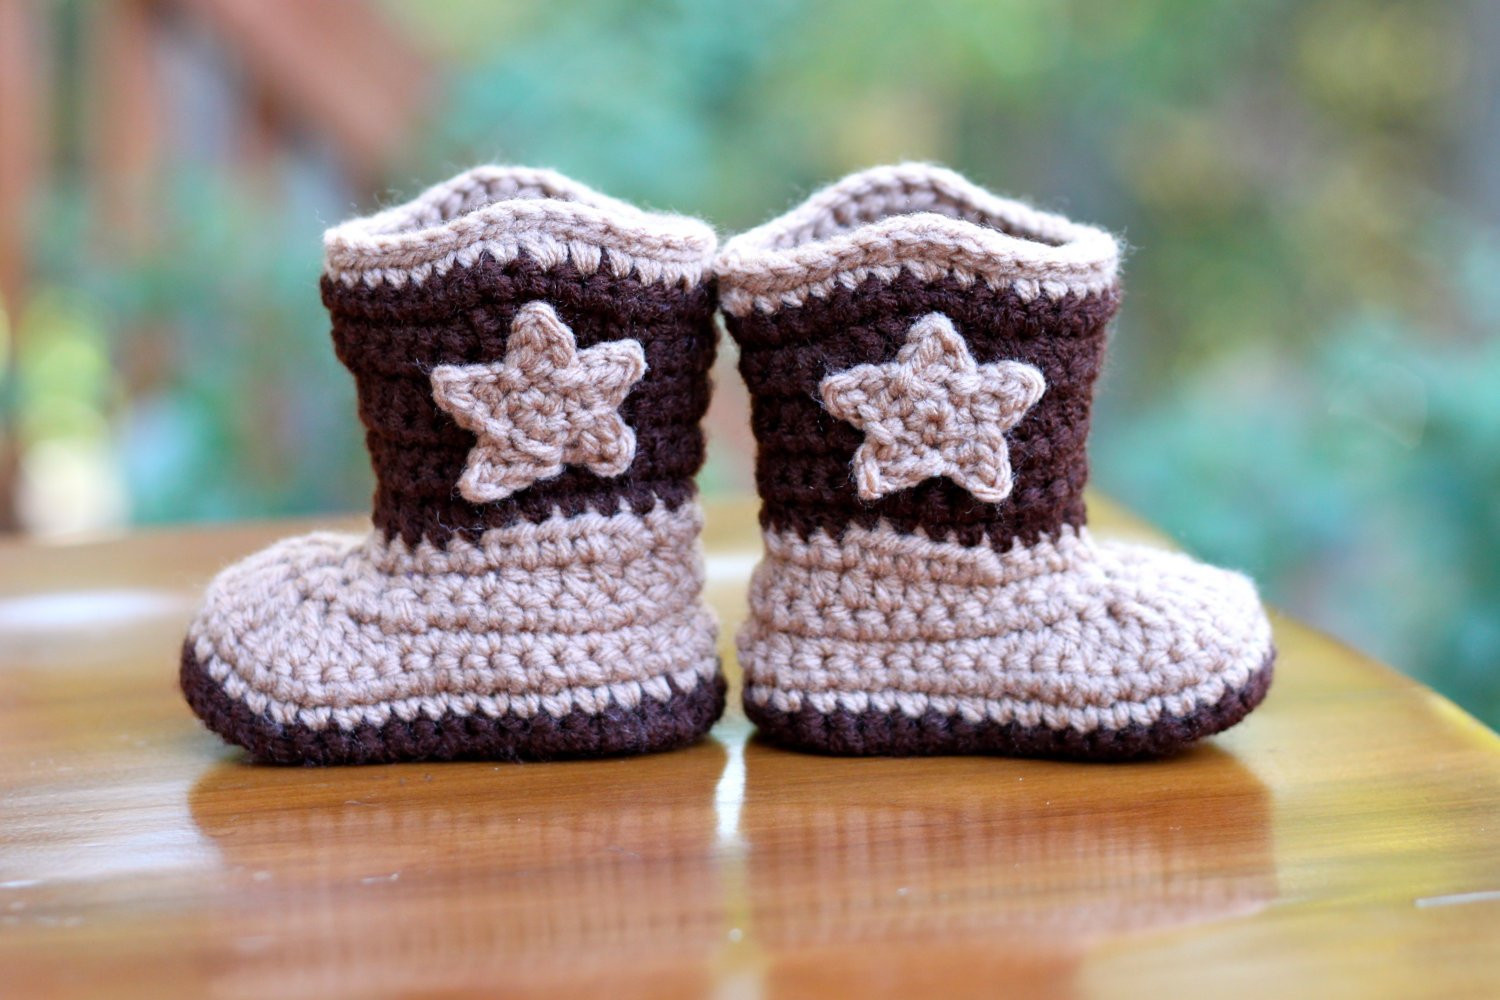 Crochet Baby Cowboy Boots Brown Baby Booties Size